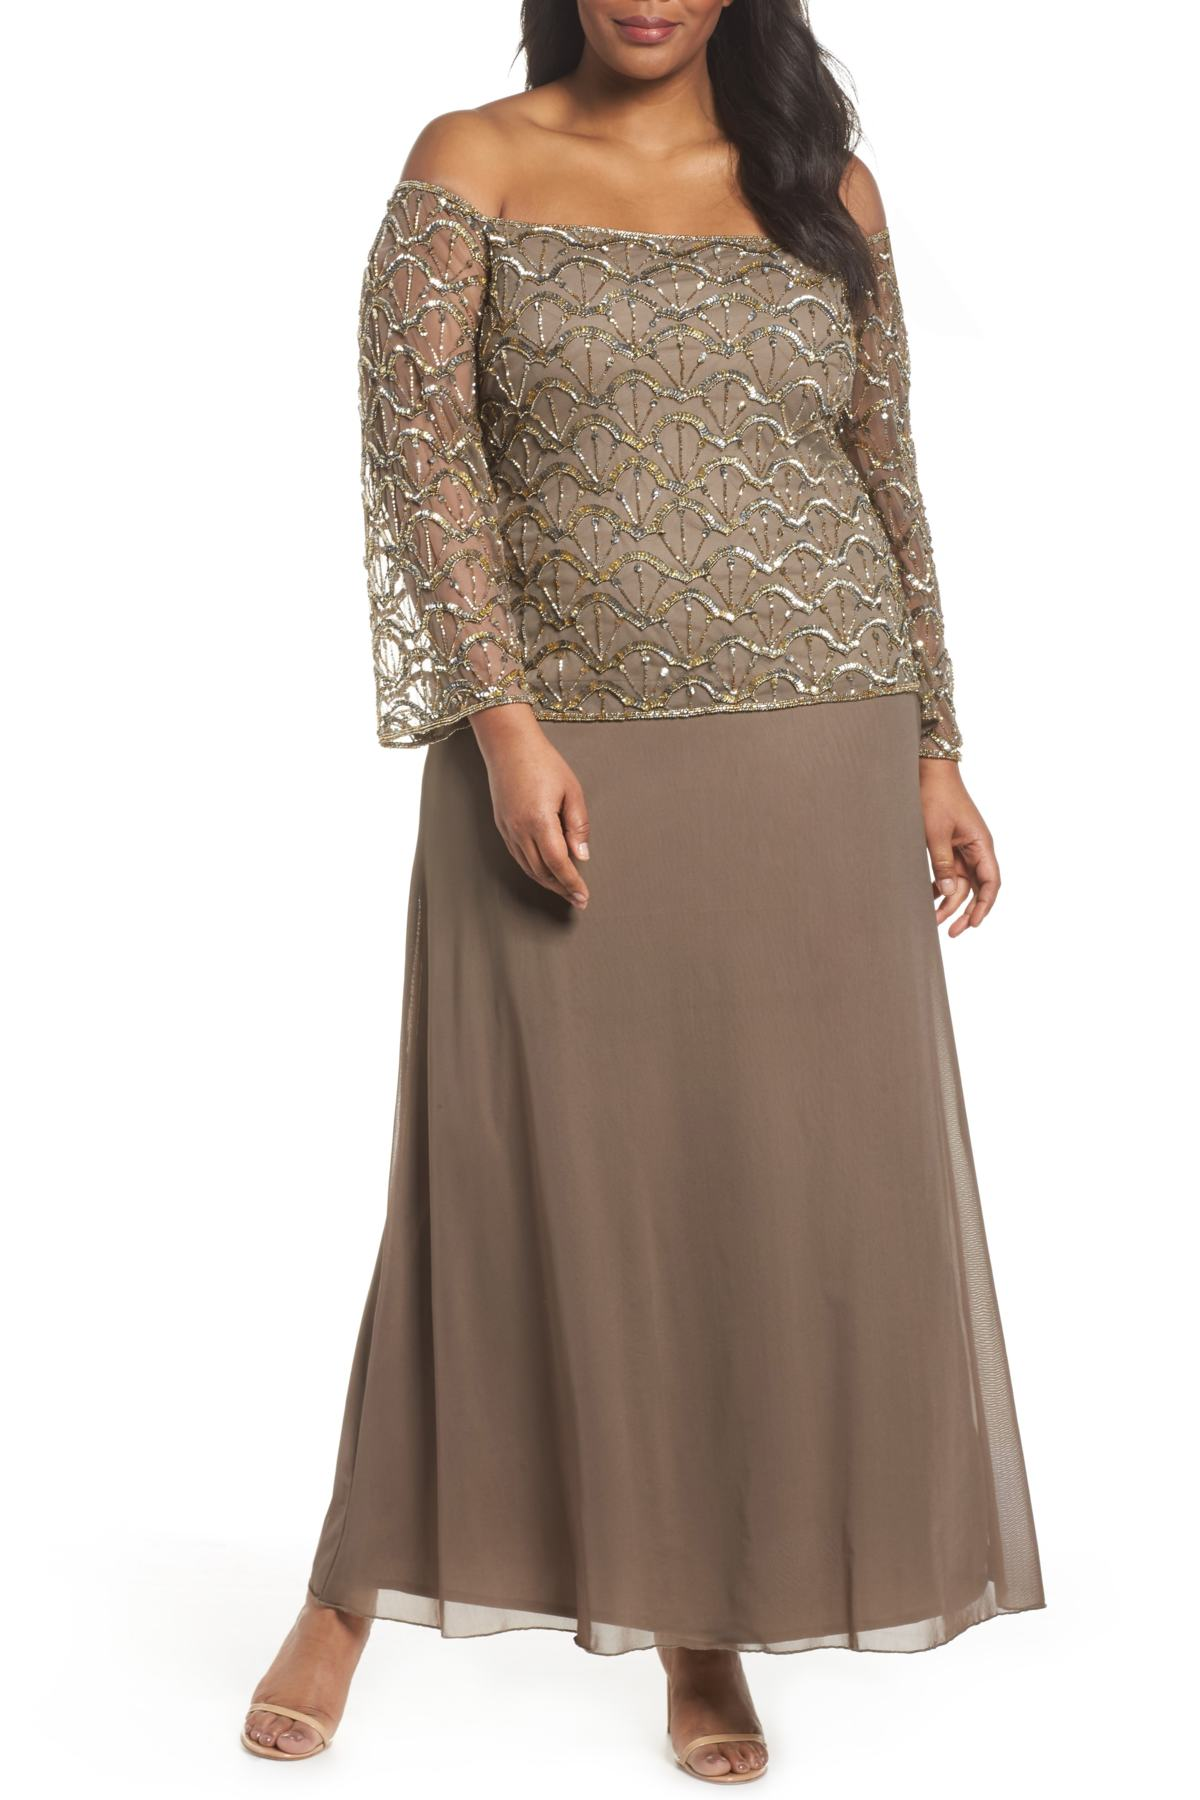 00e5e755a3ef9 Details about Pisarro Nights Embellished Off the Shoulder Gown SZ 16W  ( 228) Mocha